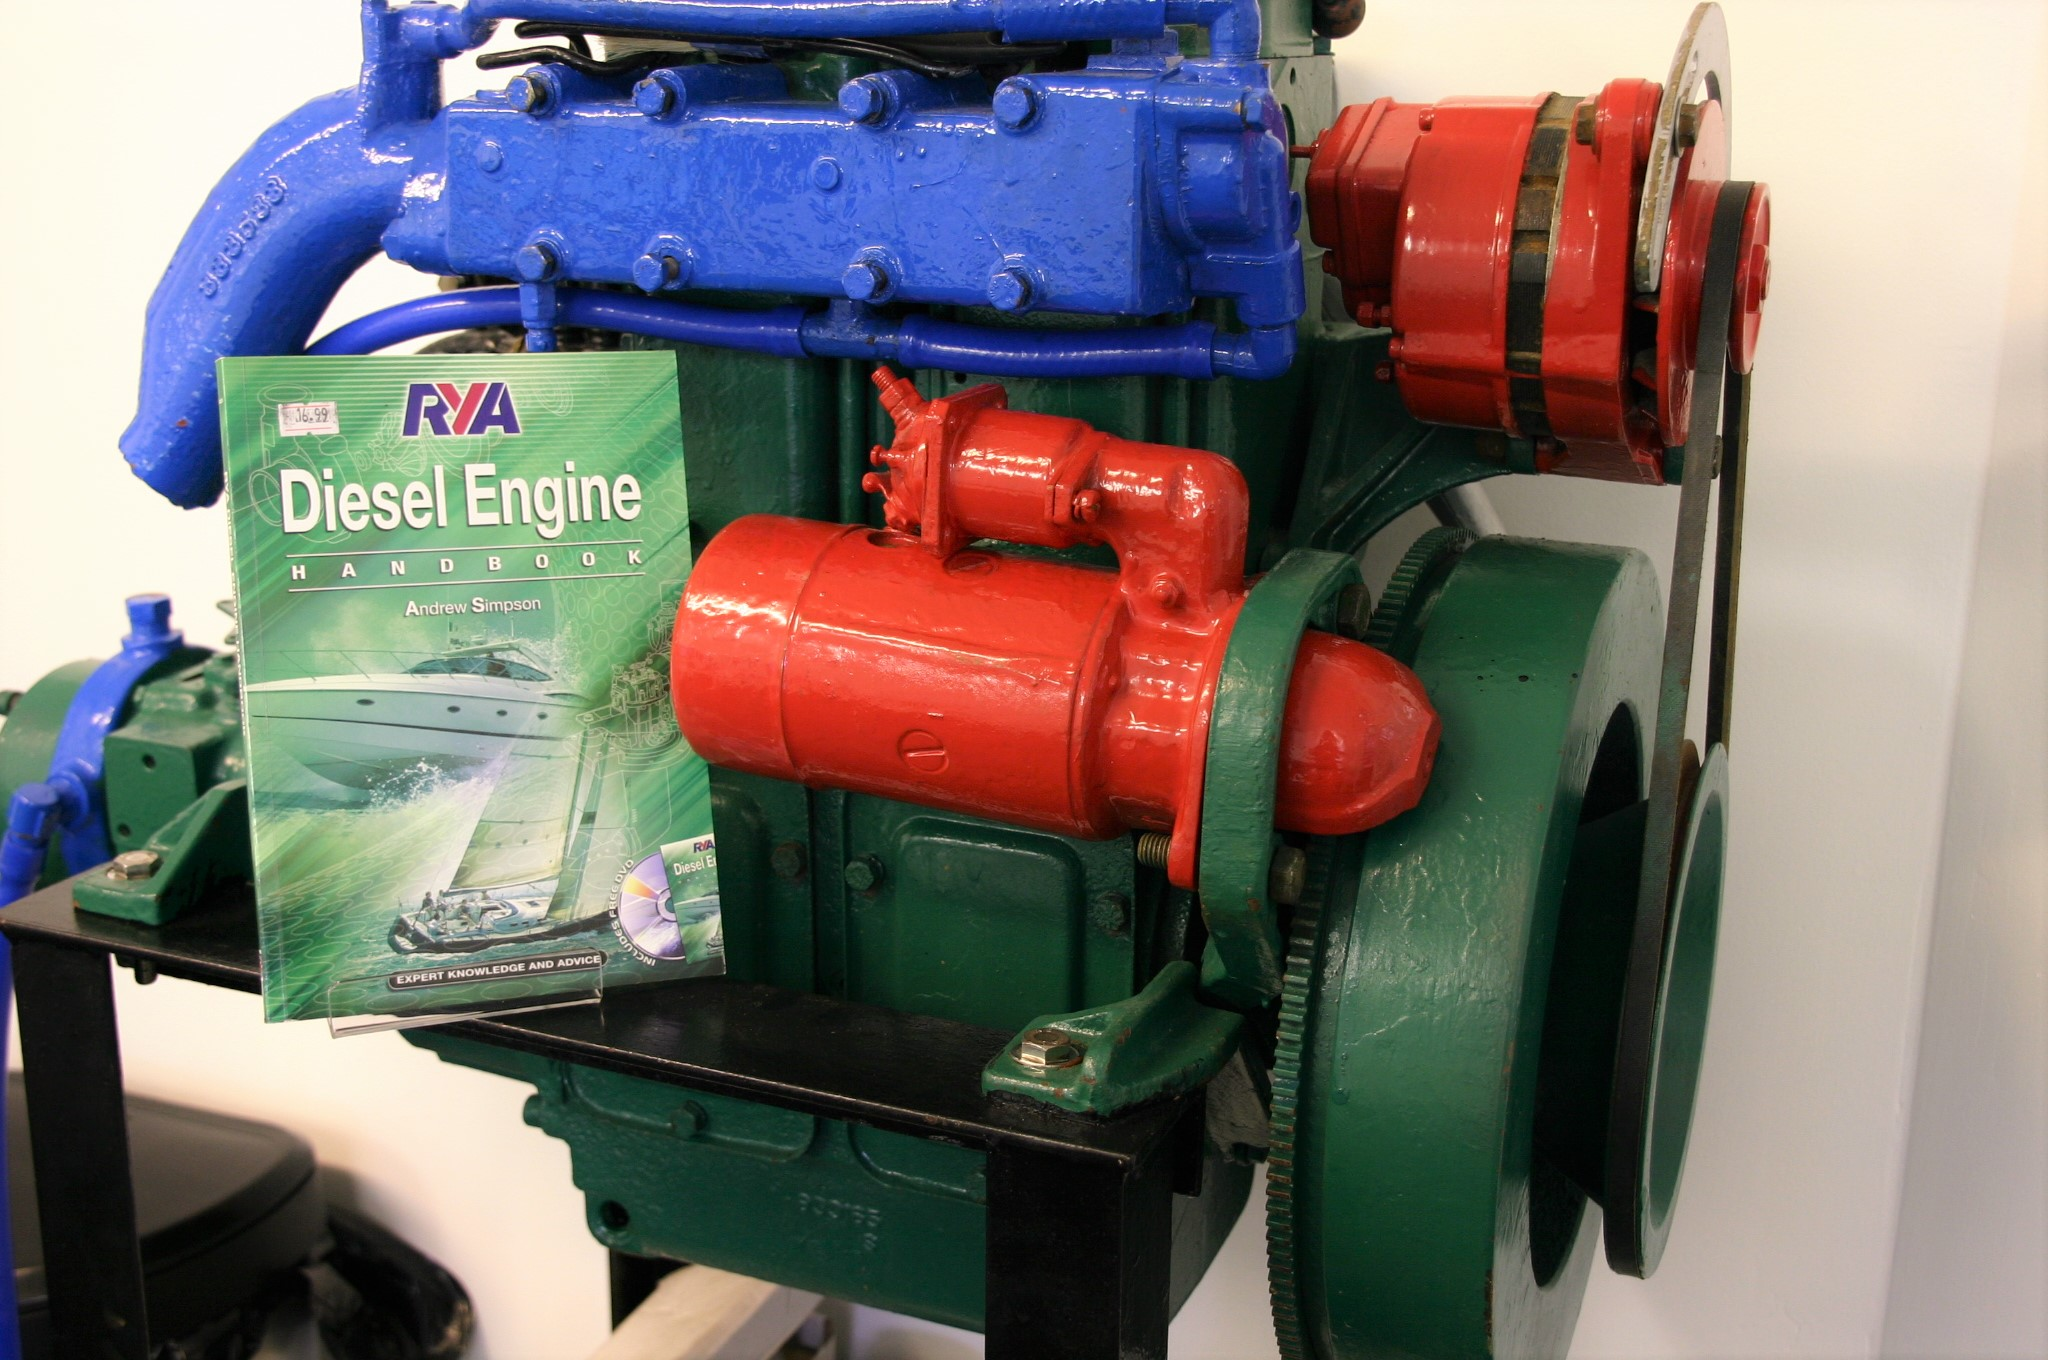 Classroom Diesel Engine Resources